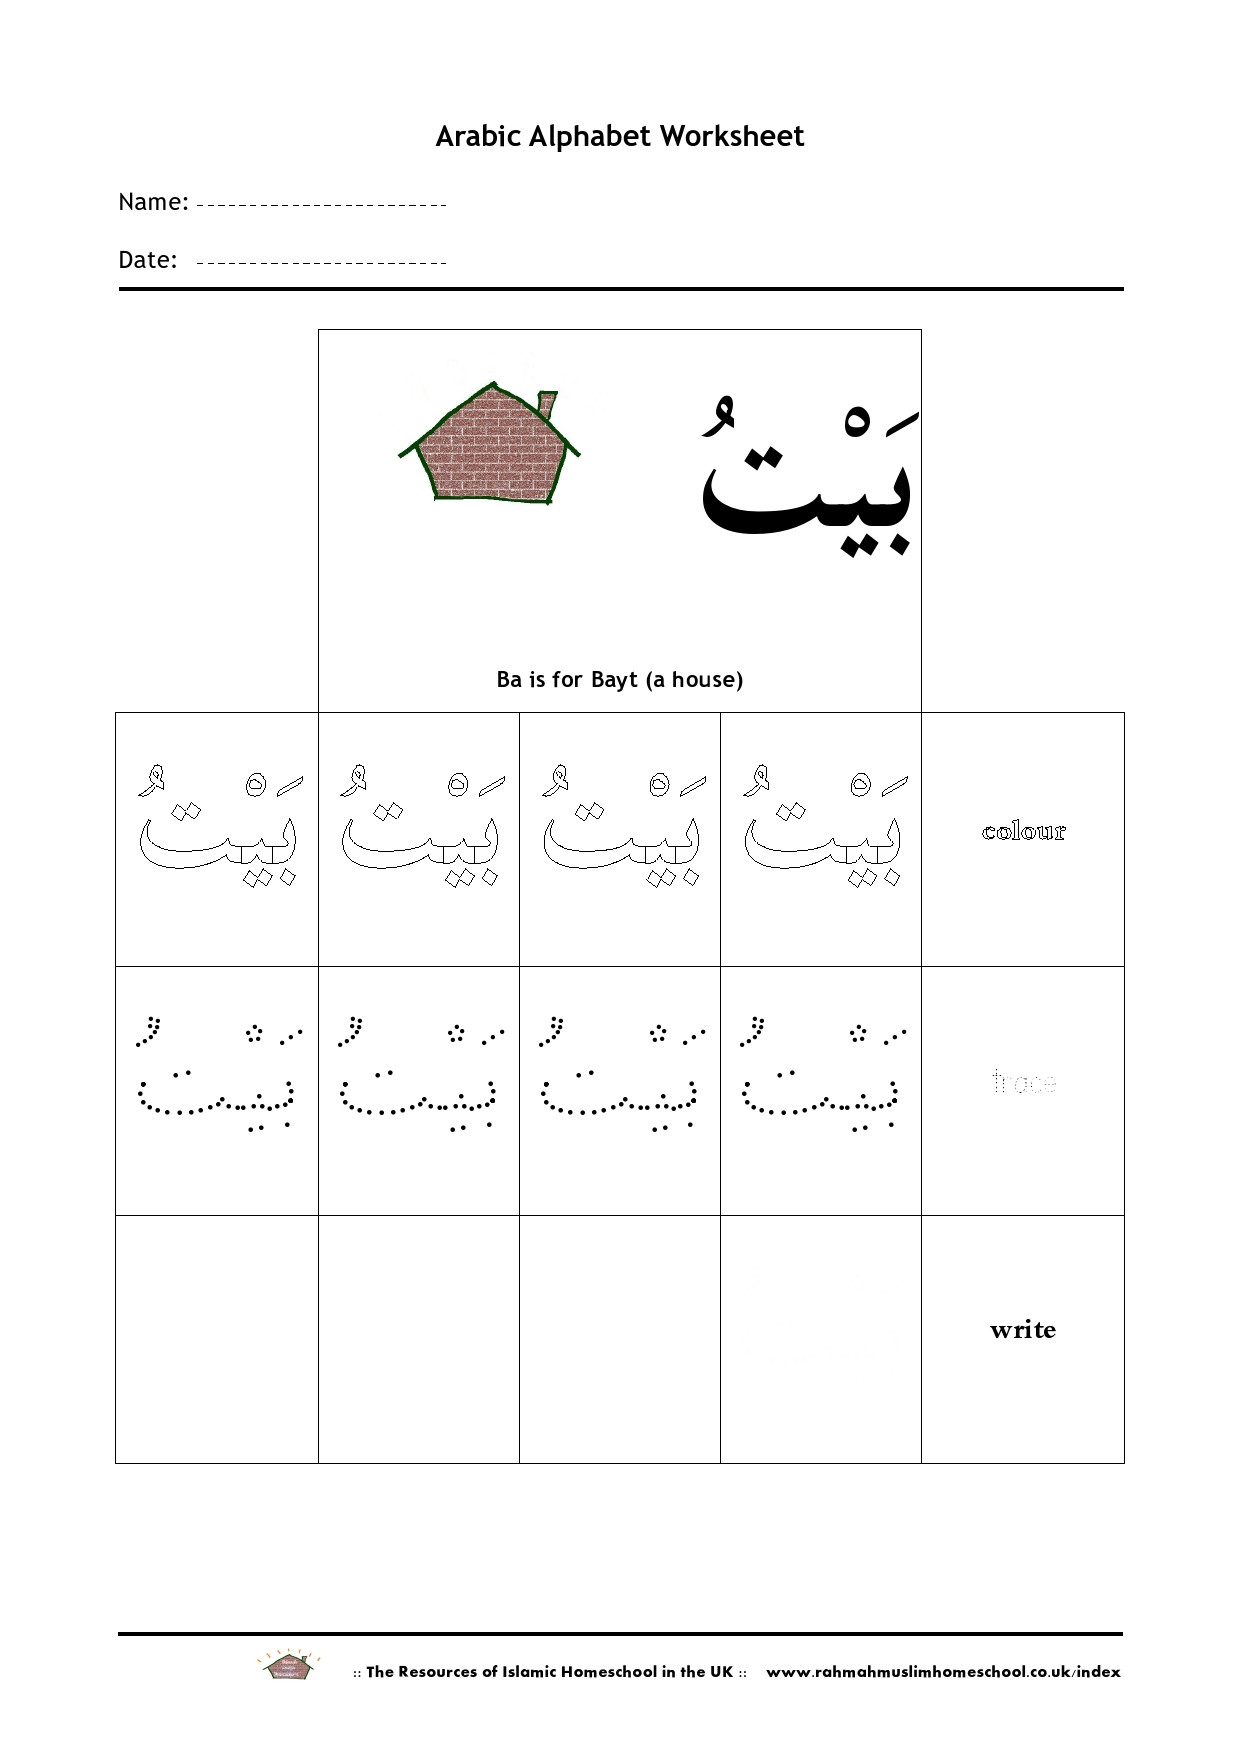 Arabic Alphabet Worksheets Printable Free Arabic Alphabet Worksheet Ba is for Bayt A House